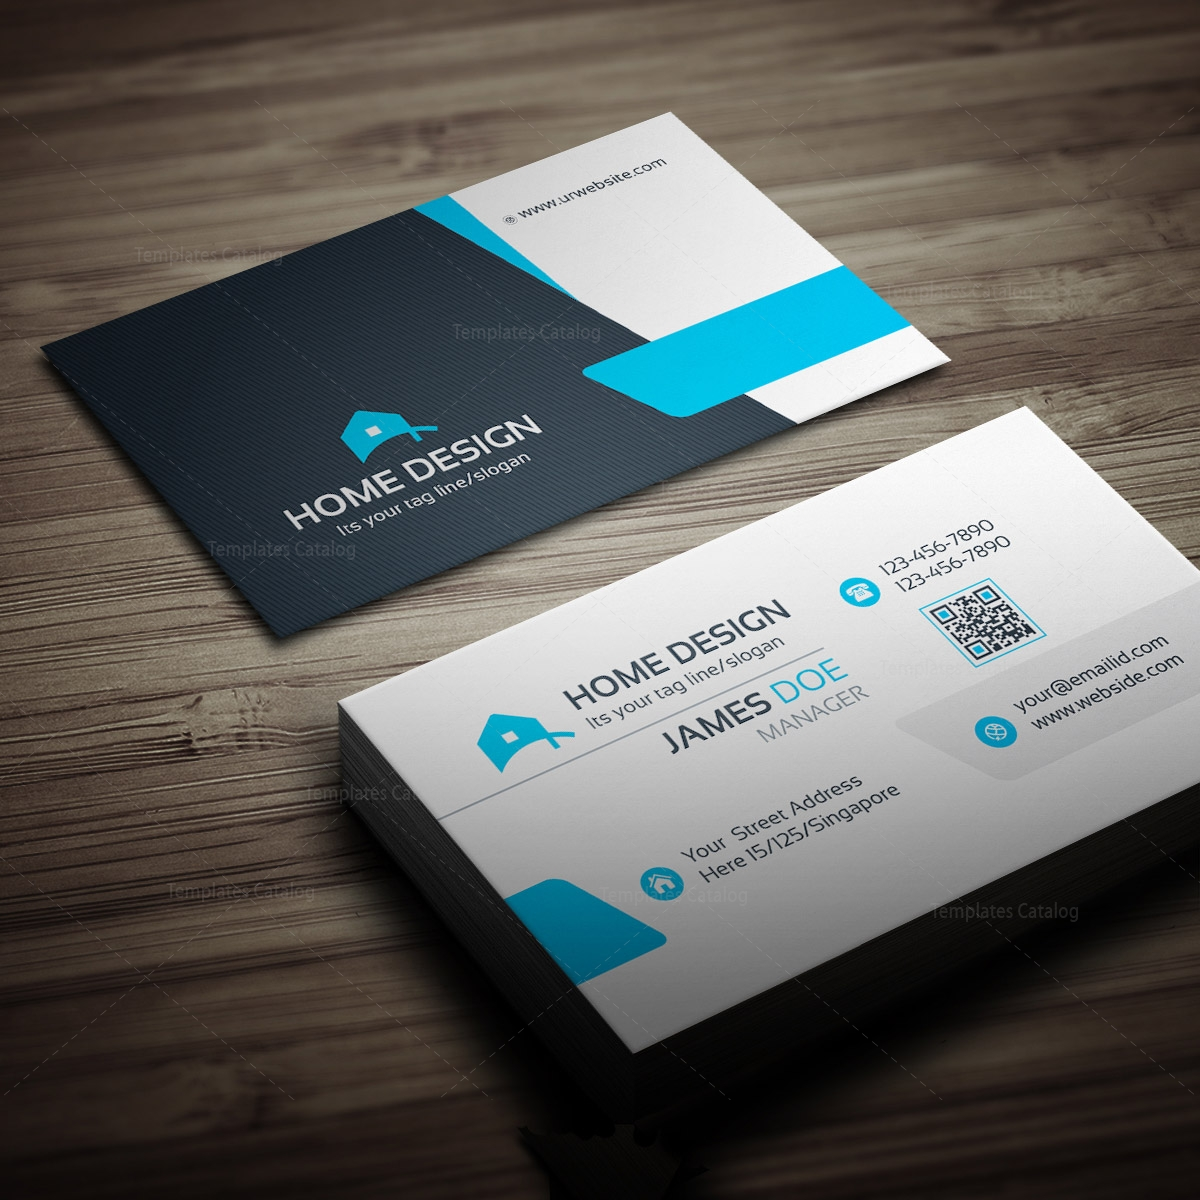 Home design business card template 000258 template catalog for Template for business card